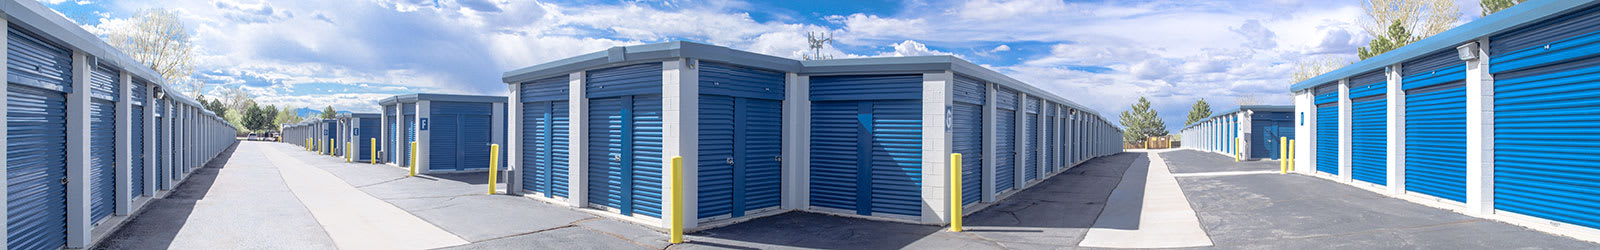 Learn more about what Security Self Storage offers!